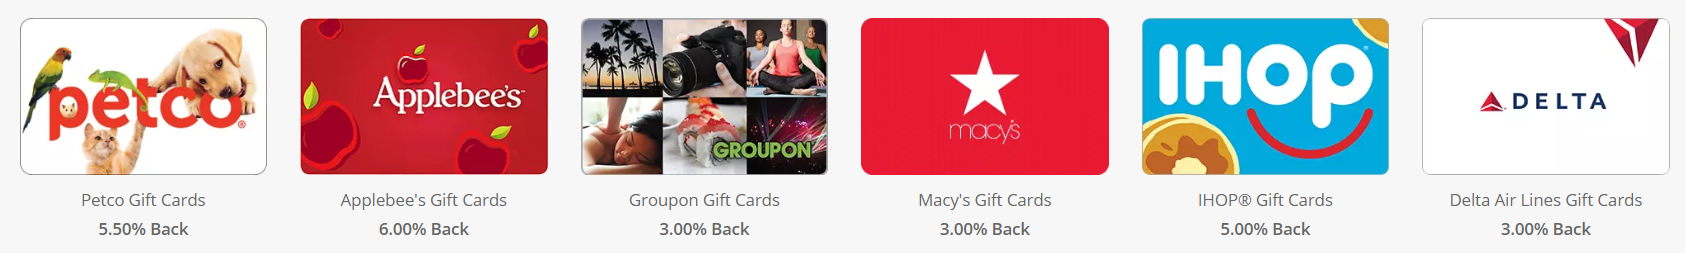 Swagbucks Gift Card Purchases earn rebates